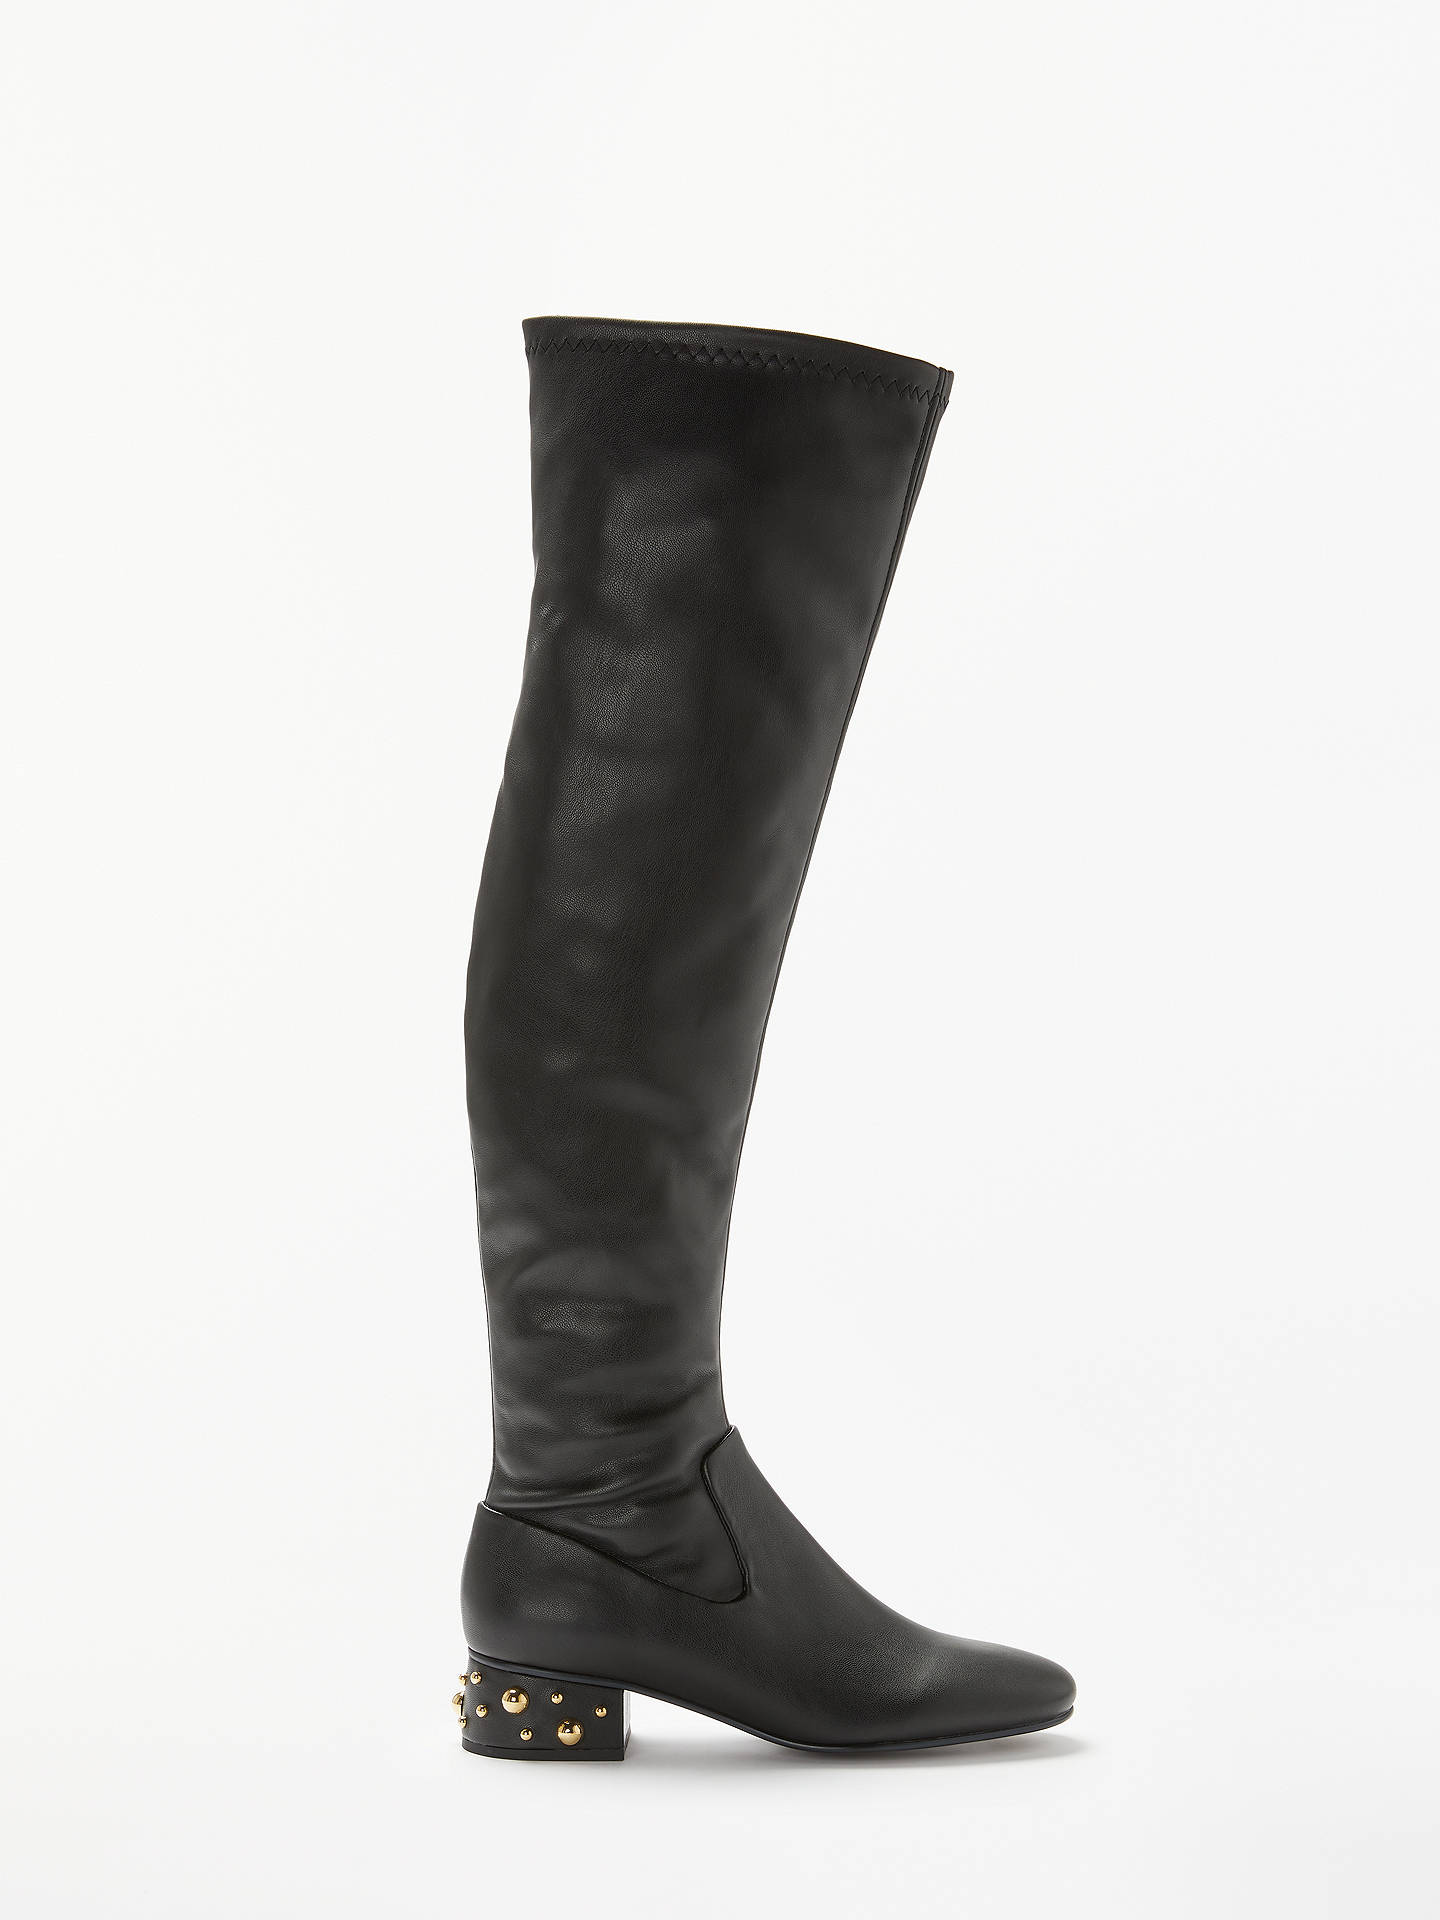 56e5c4684d2 Buy See By Chloé Knee High Block Heel Boots